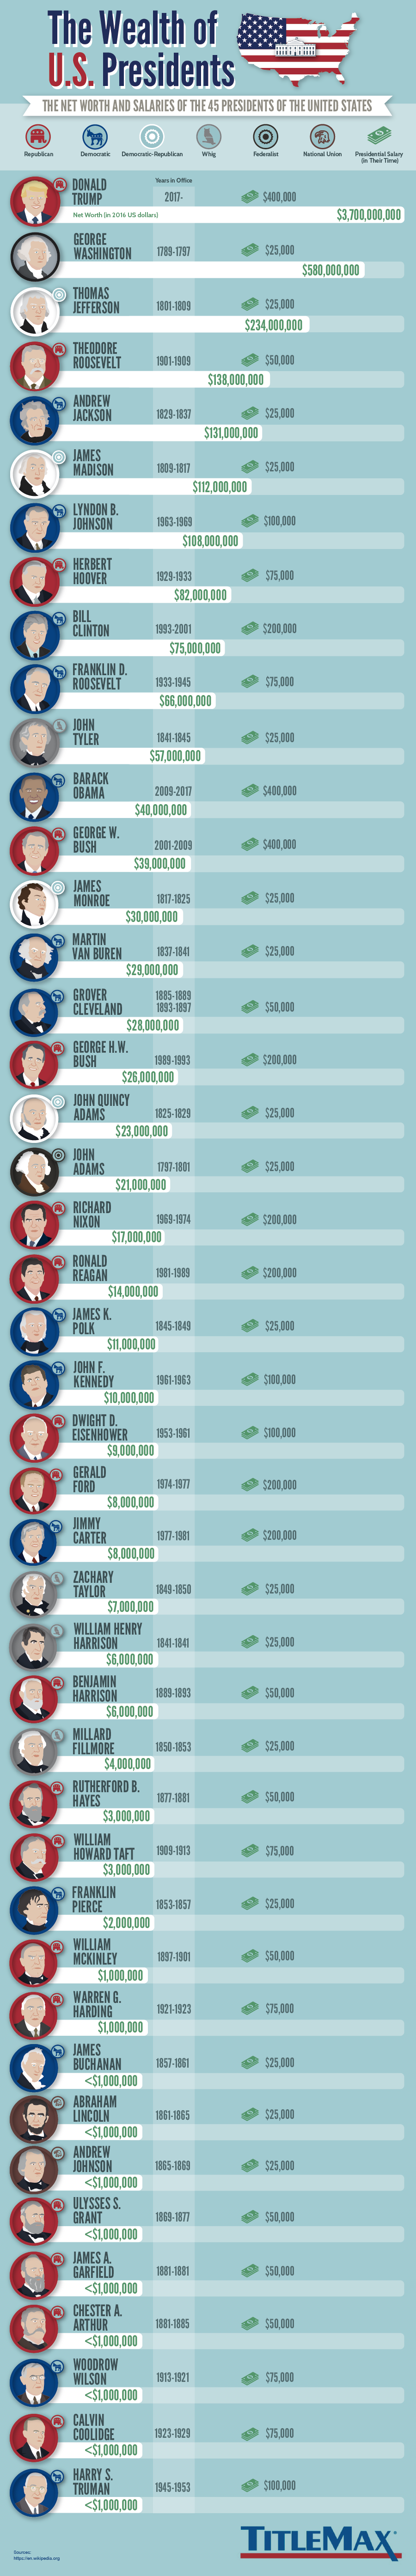 Who Were The Richest Presidents of All Time? #infographic